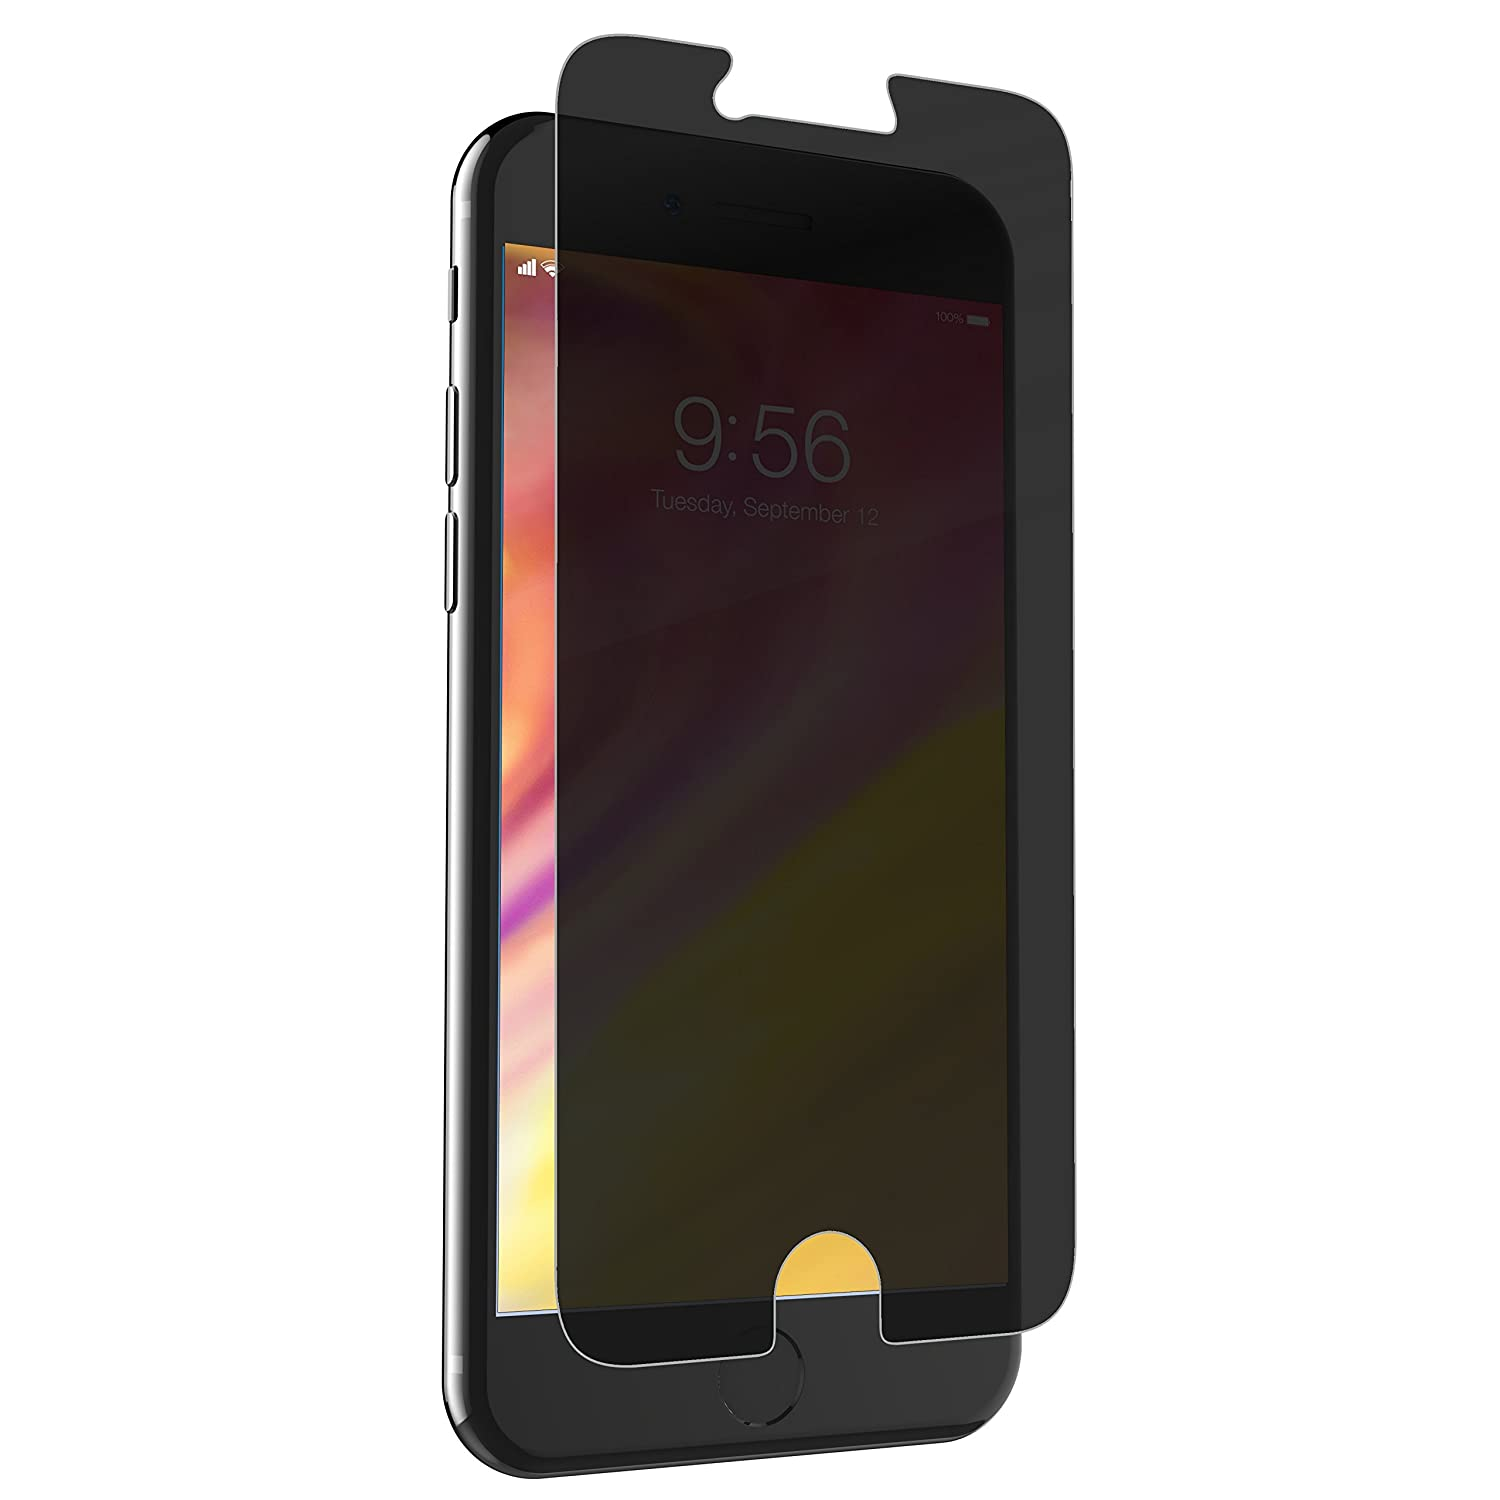 promo code 19111 1707c ZAGG InvisibleShield Glass+ Privacy Screen Protector for Apple iPhone 7,  iPhone 6s, iPhone 6 – 3X Impact Protection